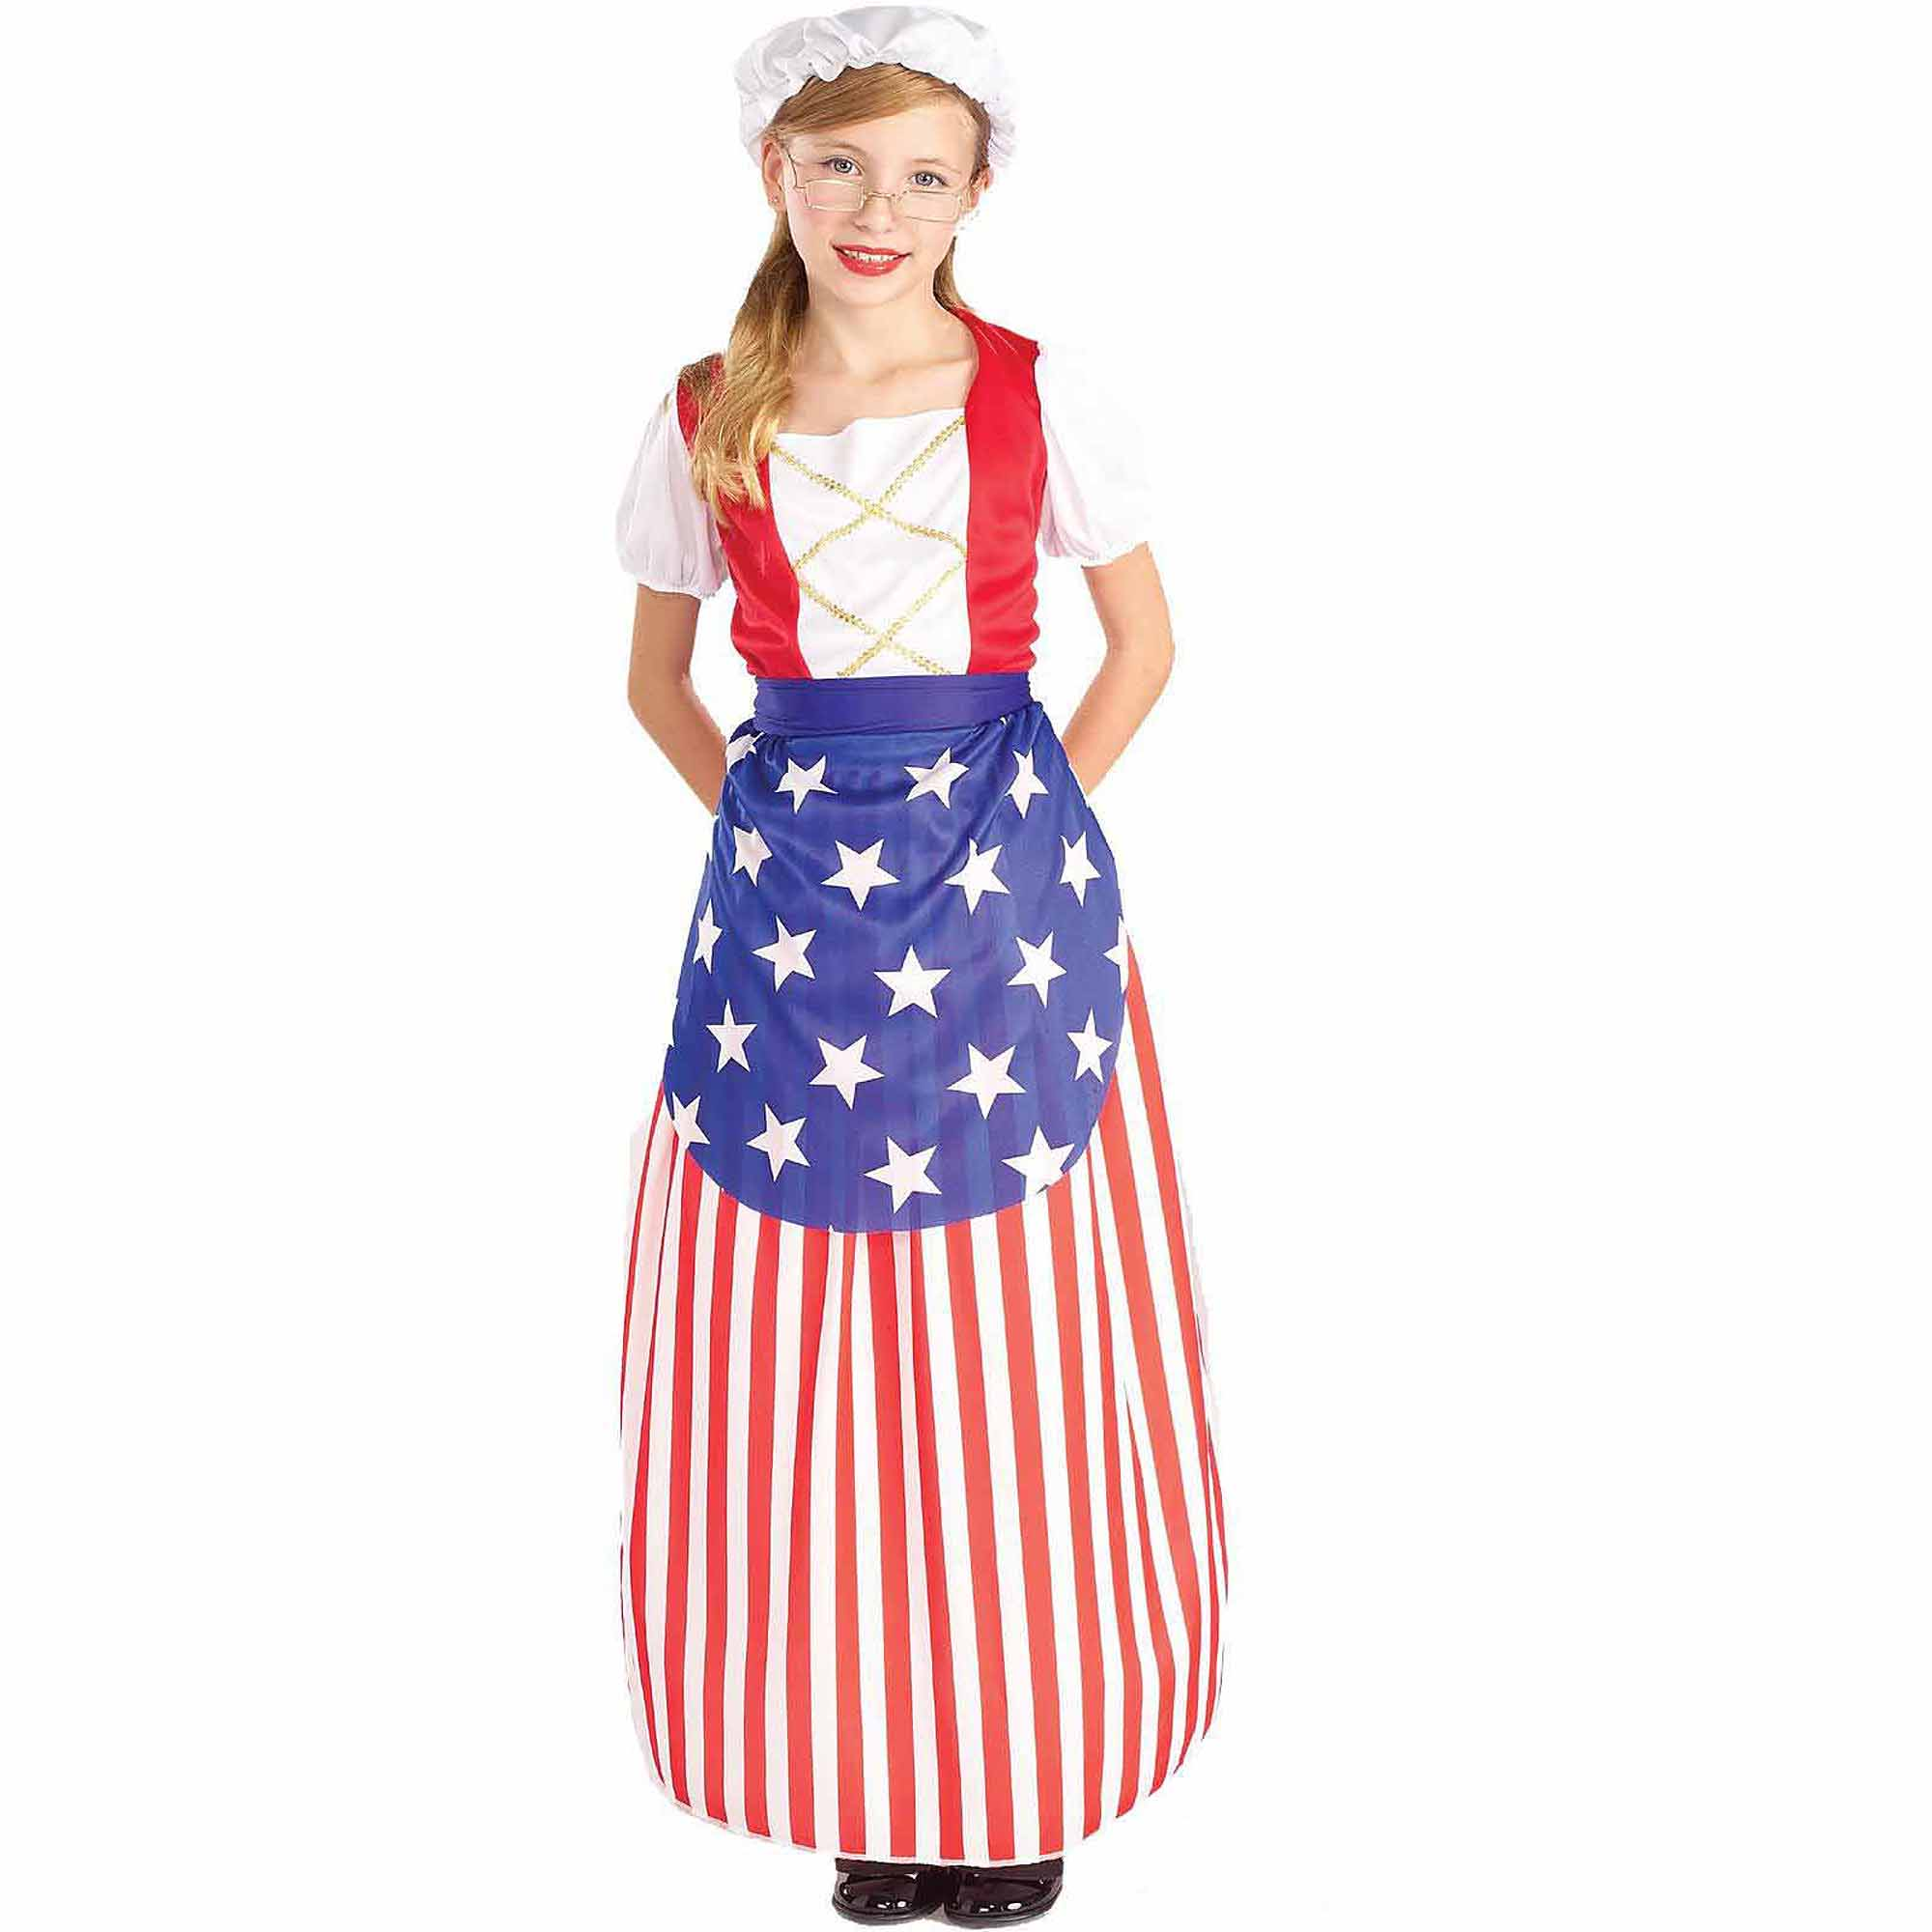 Betsy Ross Heroes In History Child Halloween Costume